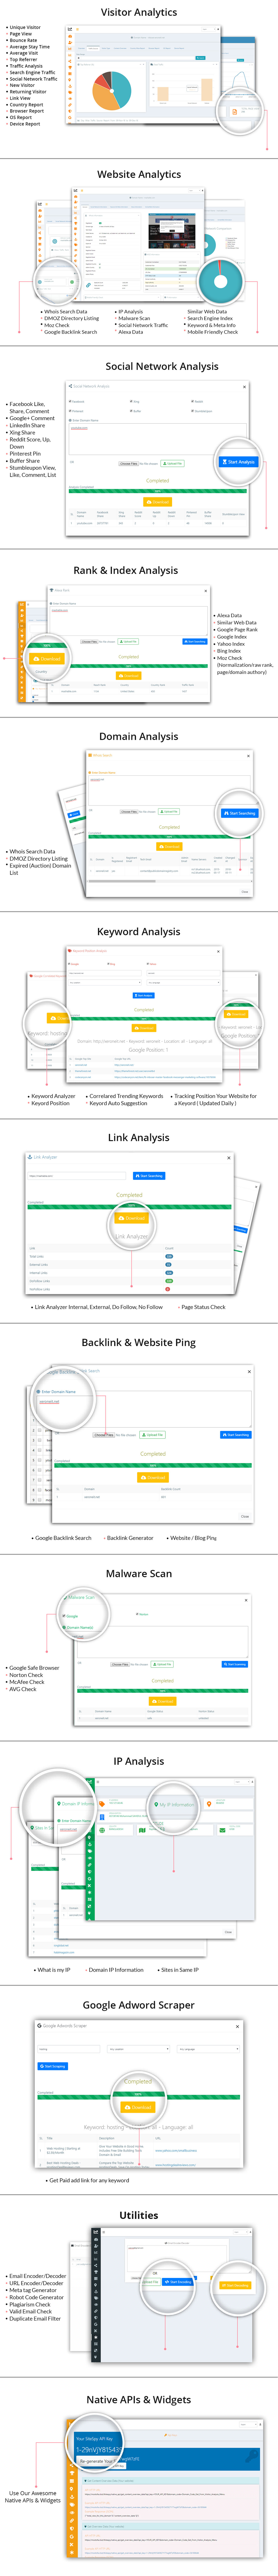 SiteSpy - The Most Complete Visitor Analytics & SEO Tools - 4